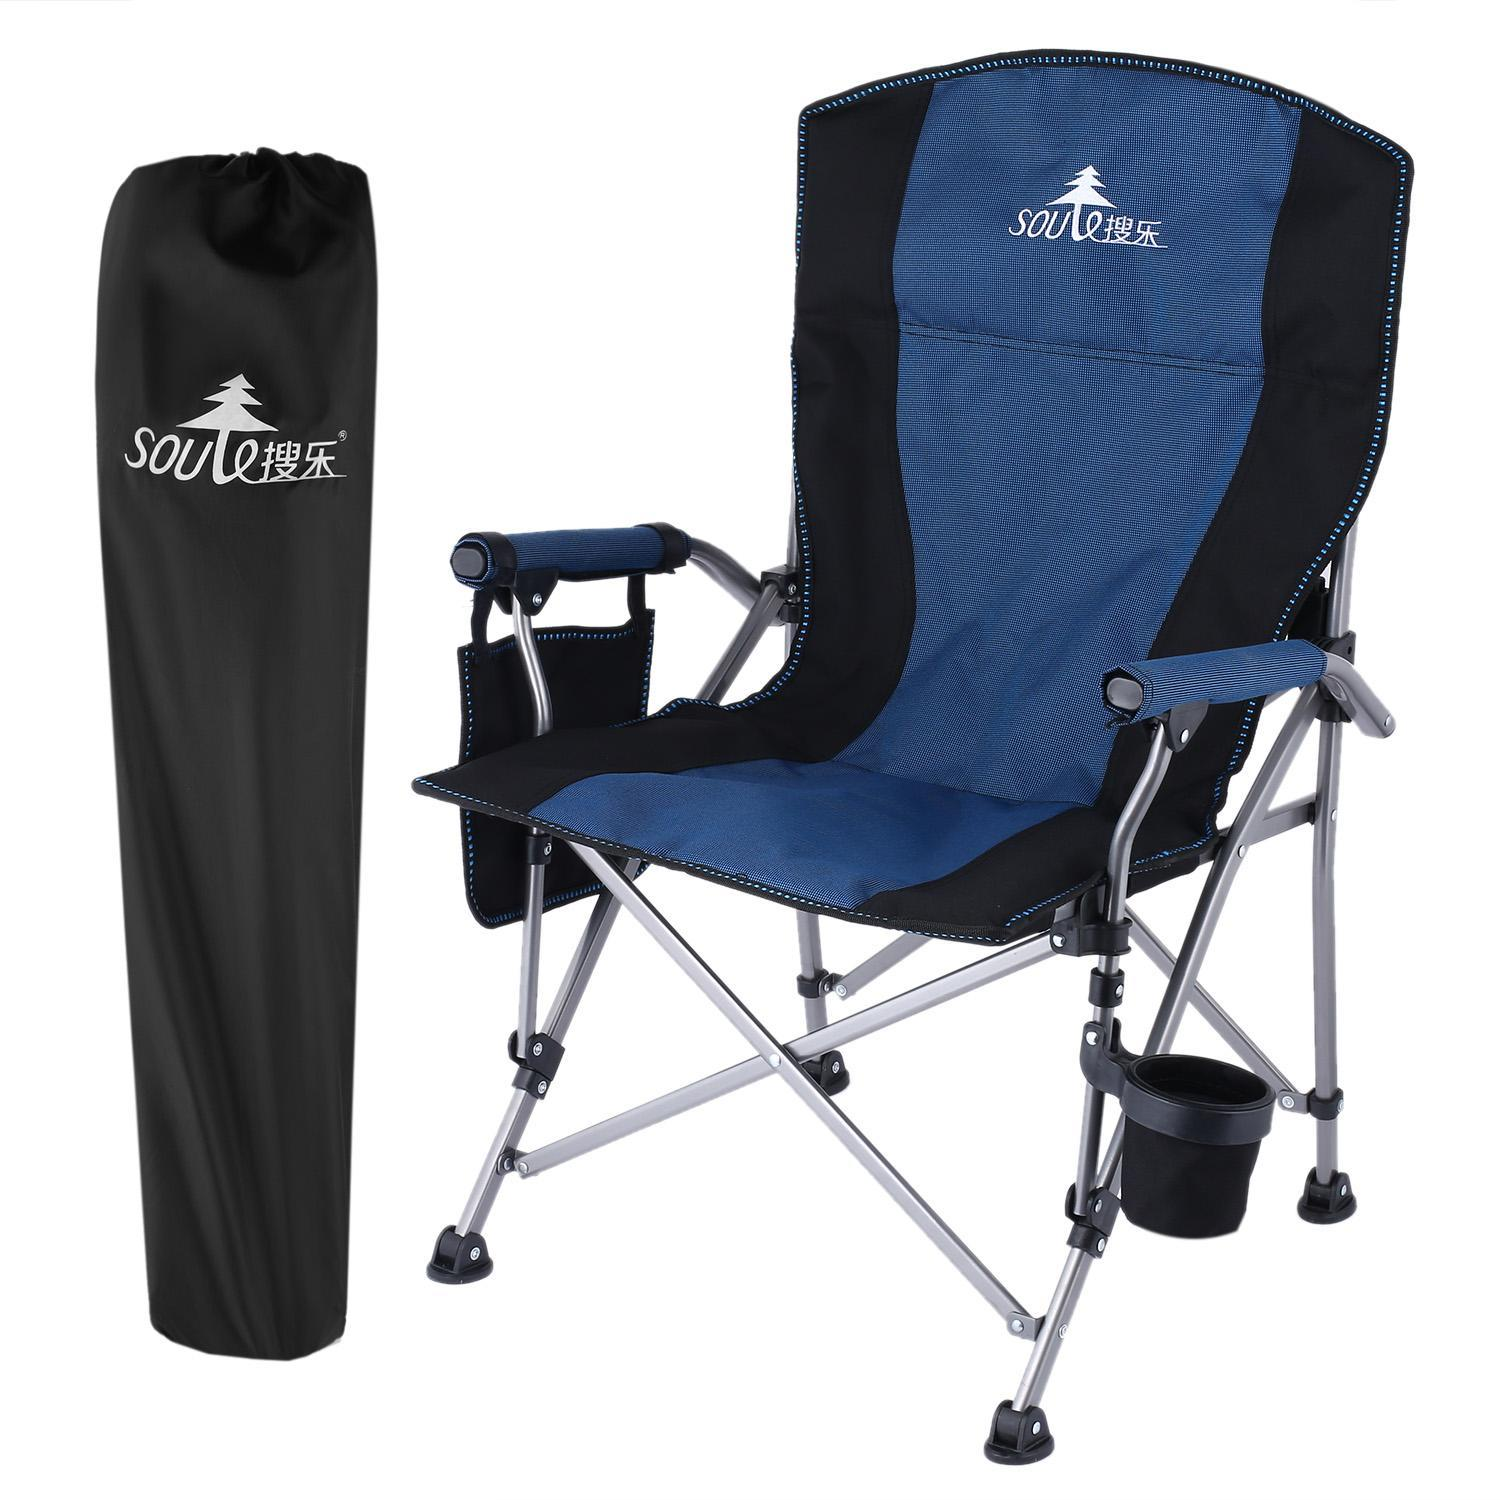 Amazing Outdoor Portable Oxford Beach Camping Hiking Fishing Folding Chair With Cup  Holder RYSTE   Walmart.com